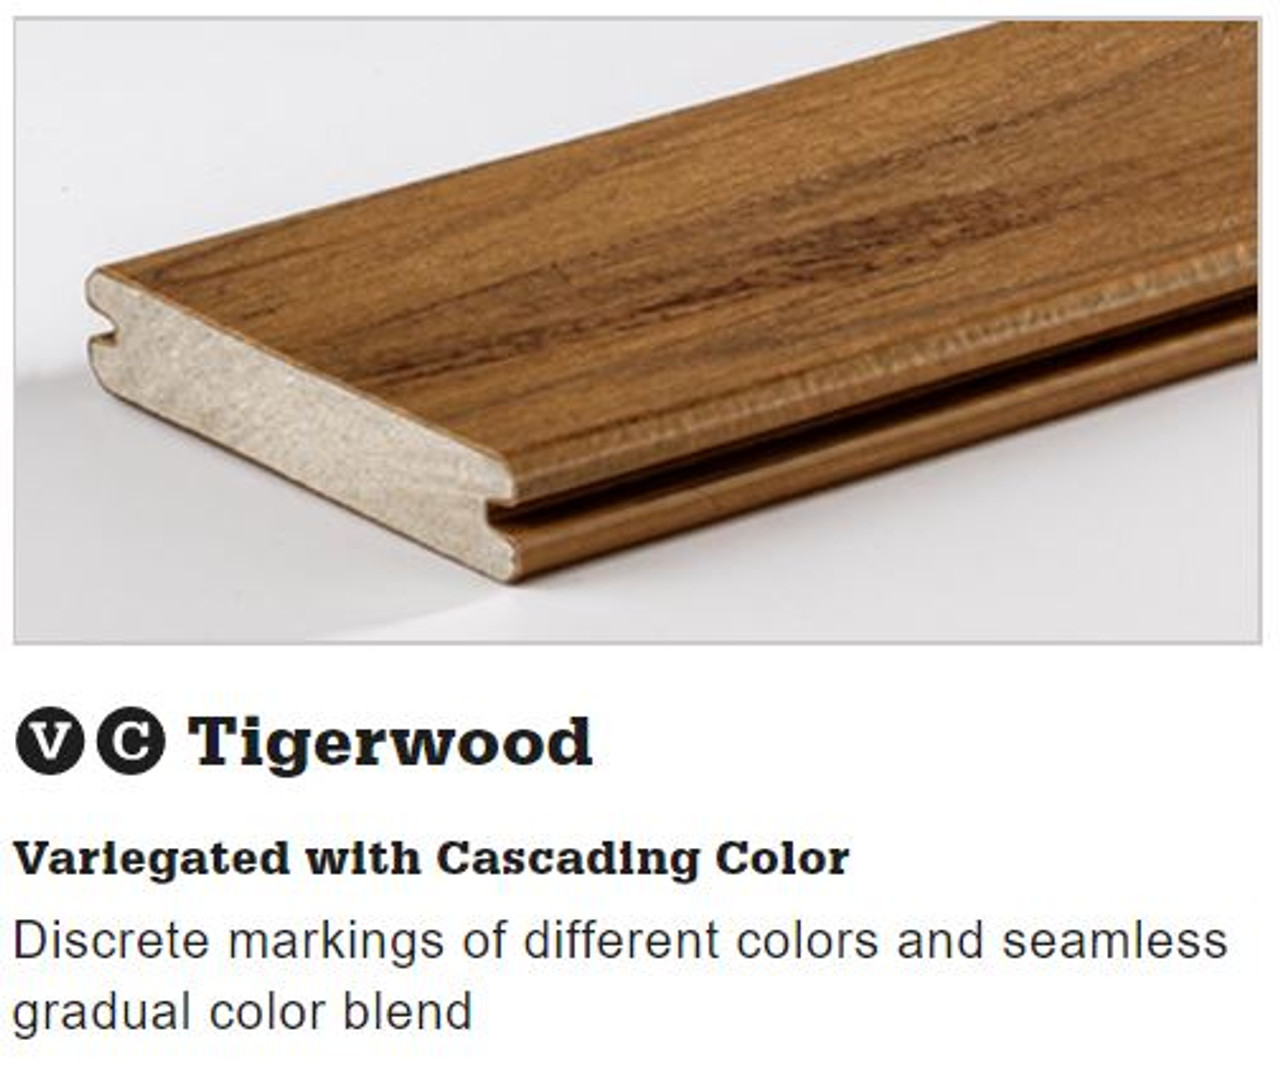 TimberTech Legacy Grooved Decking in Tigerwood